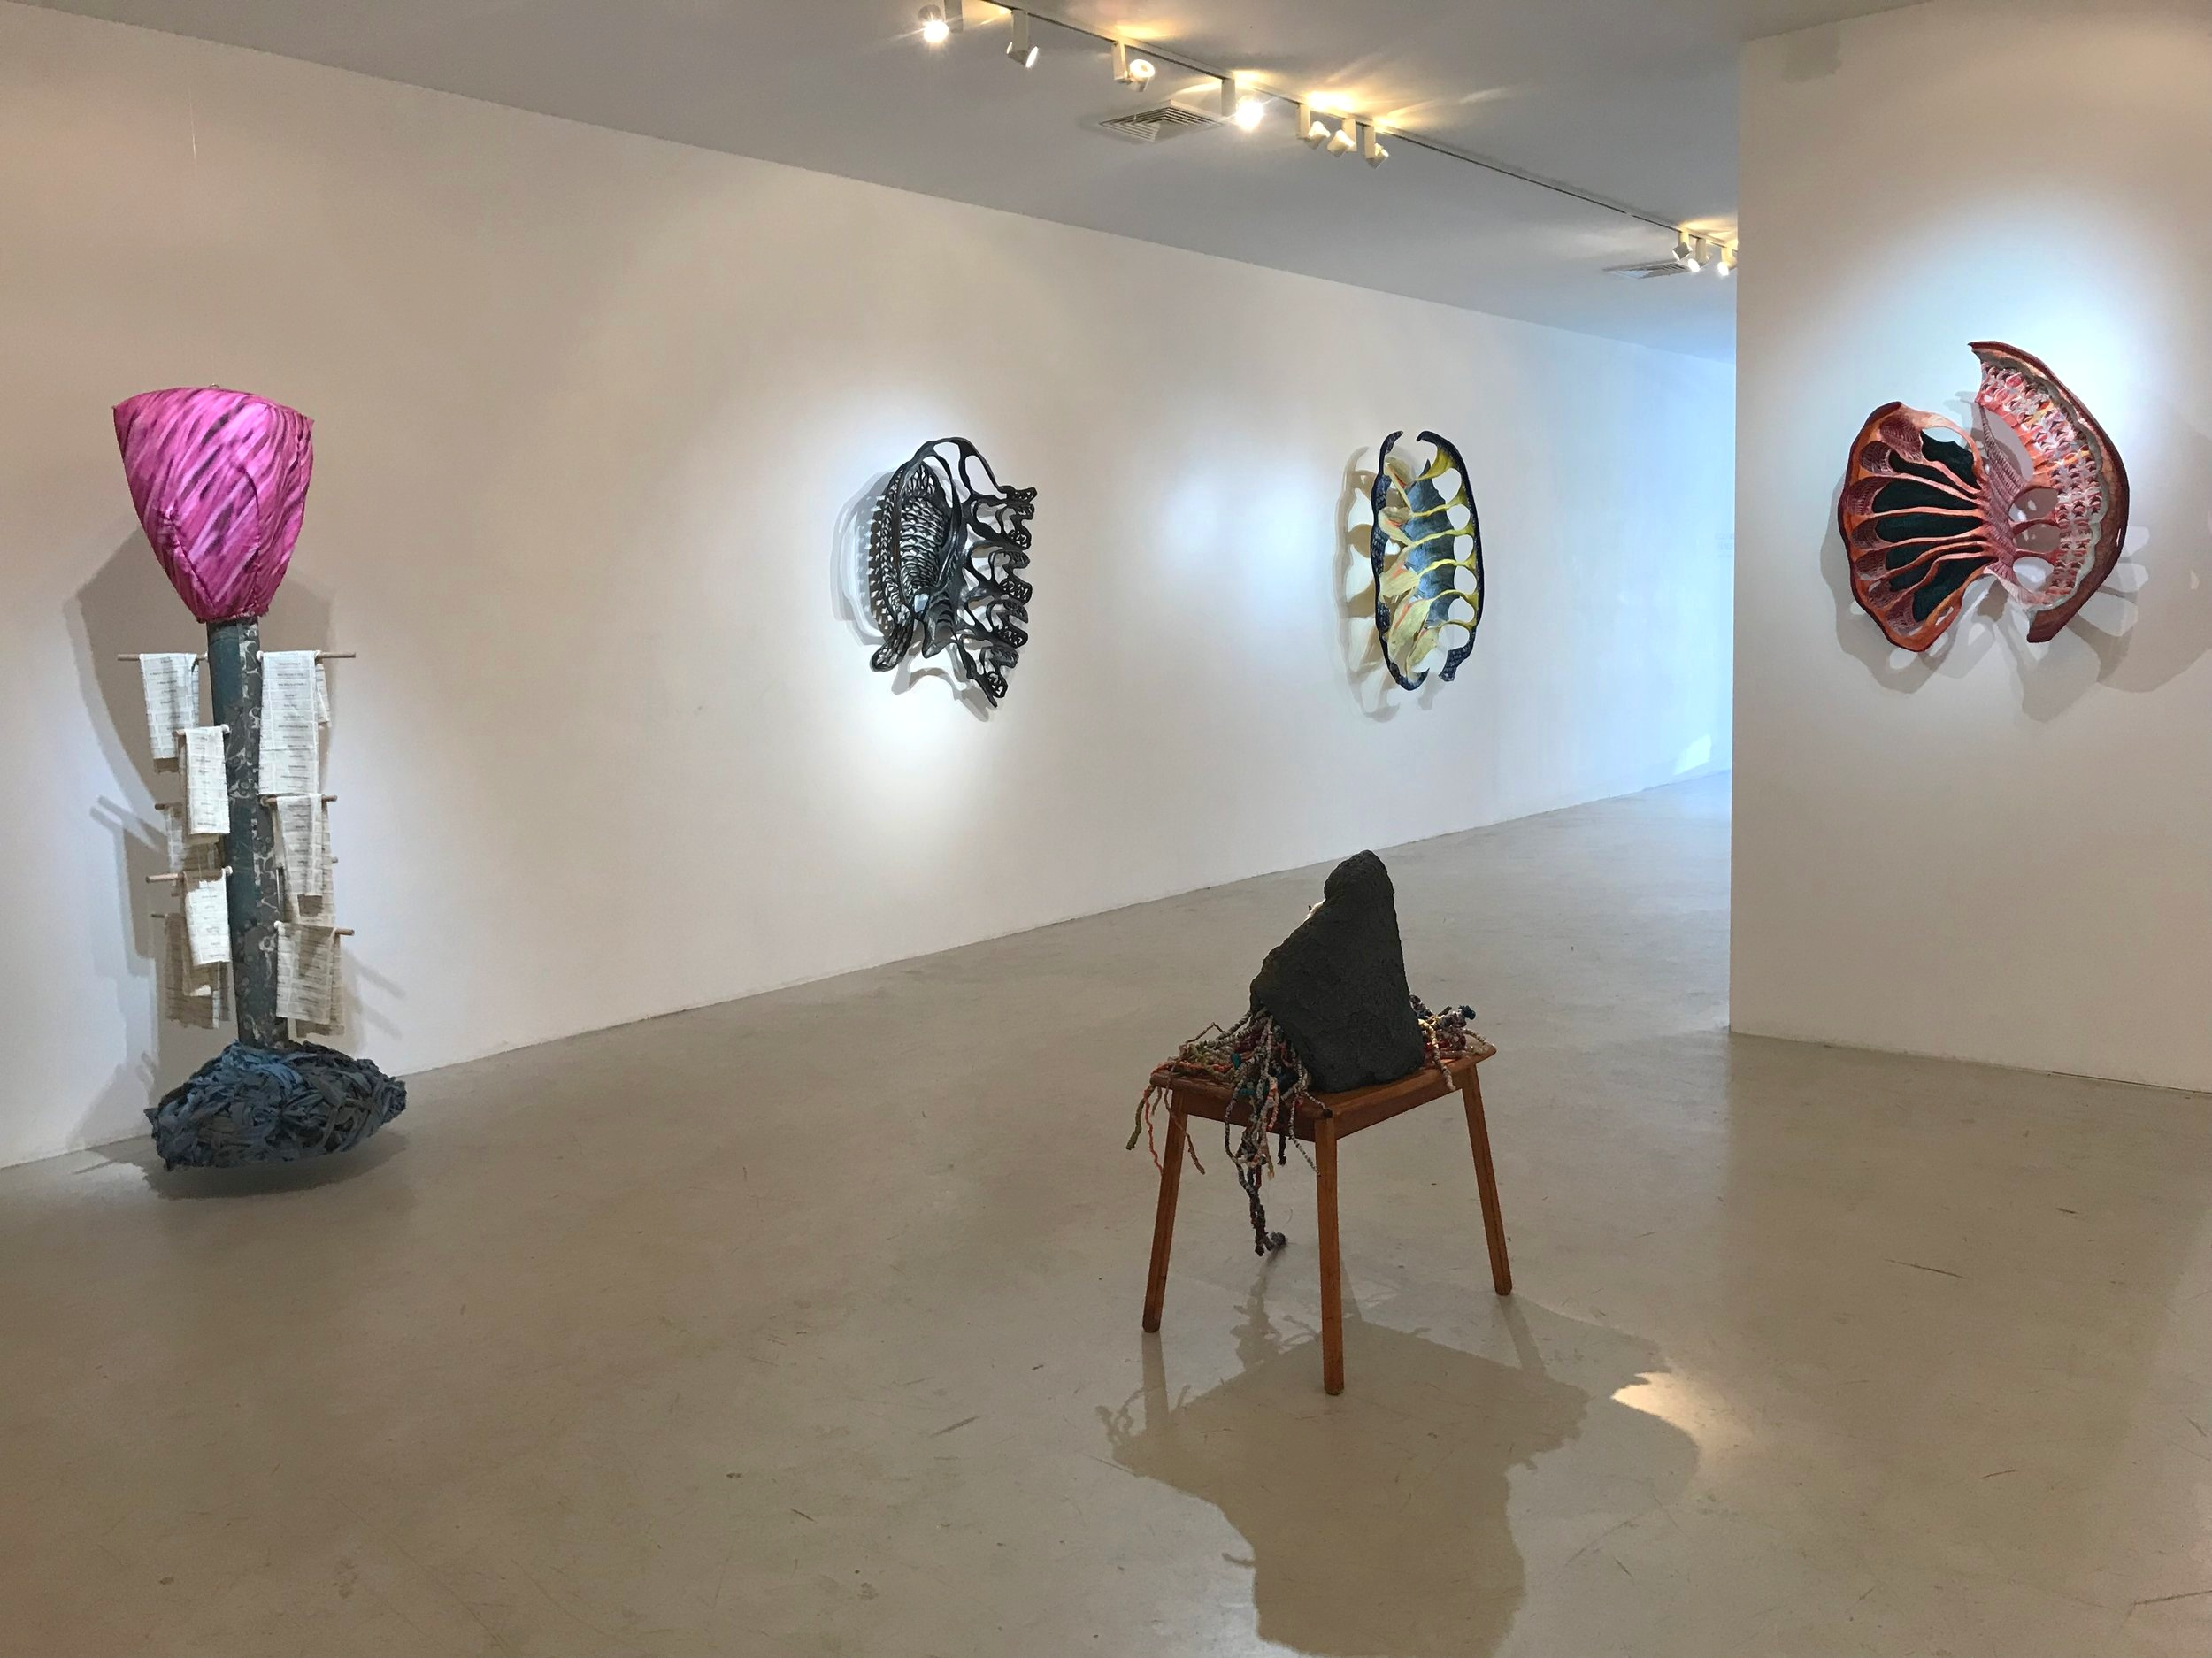 Installation view.  Becca Lowry & Jane Miller  at Fred Giampietro Gallery, April 2019. Image: J. Gleisner.